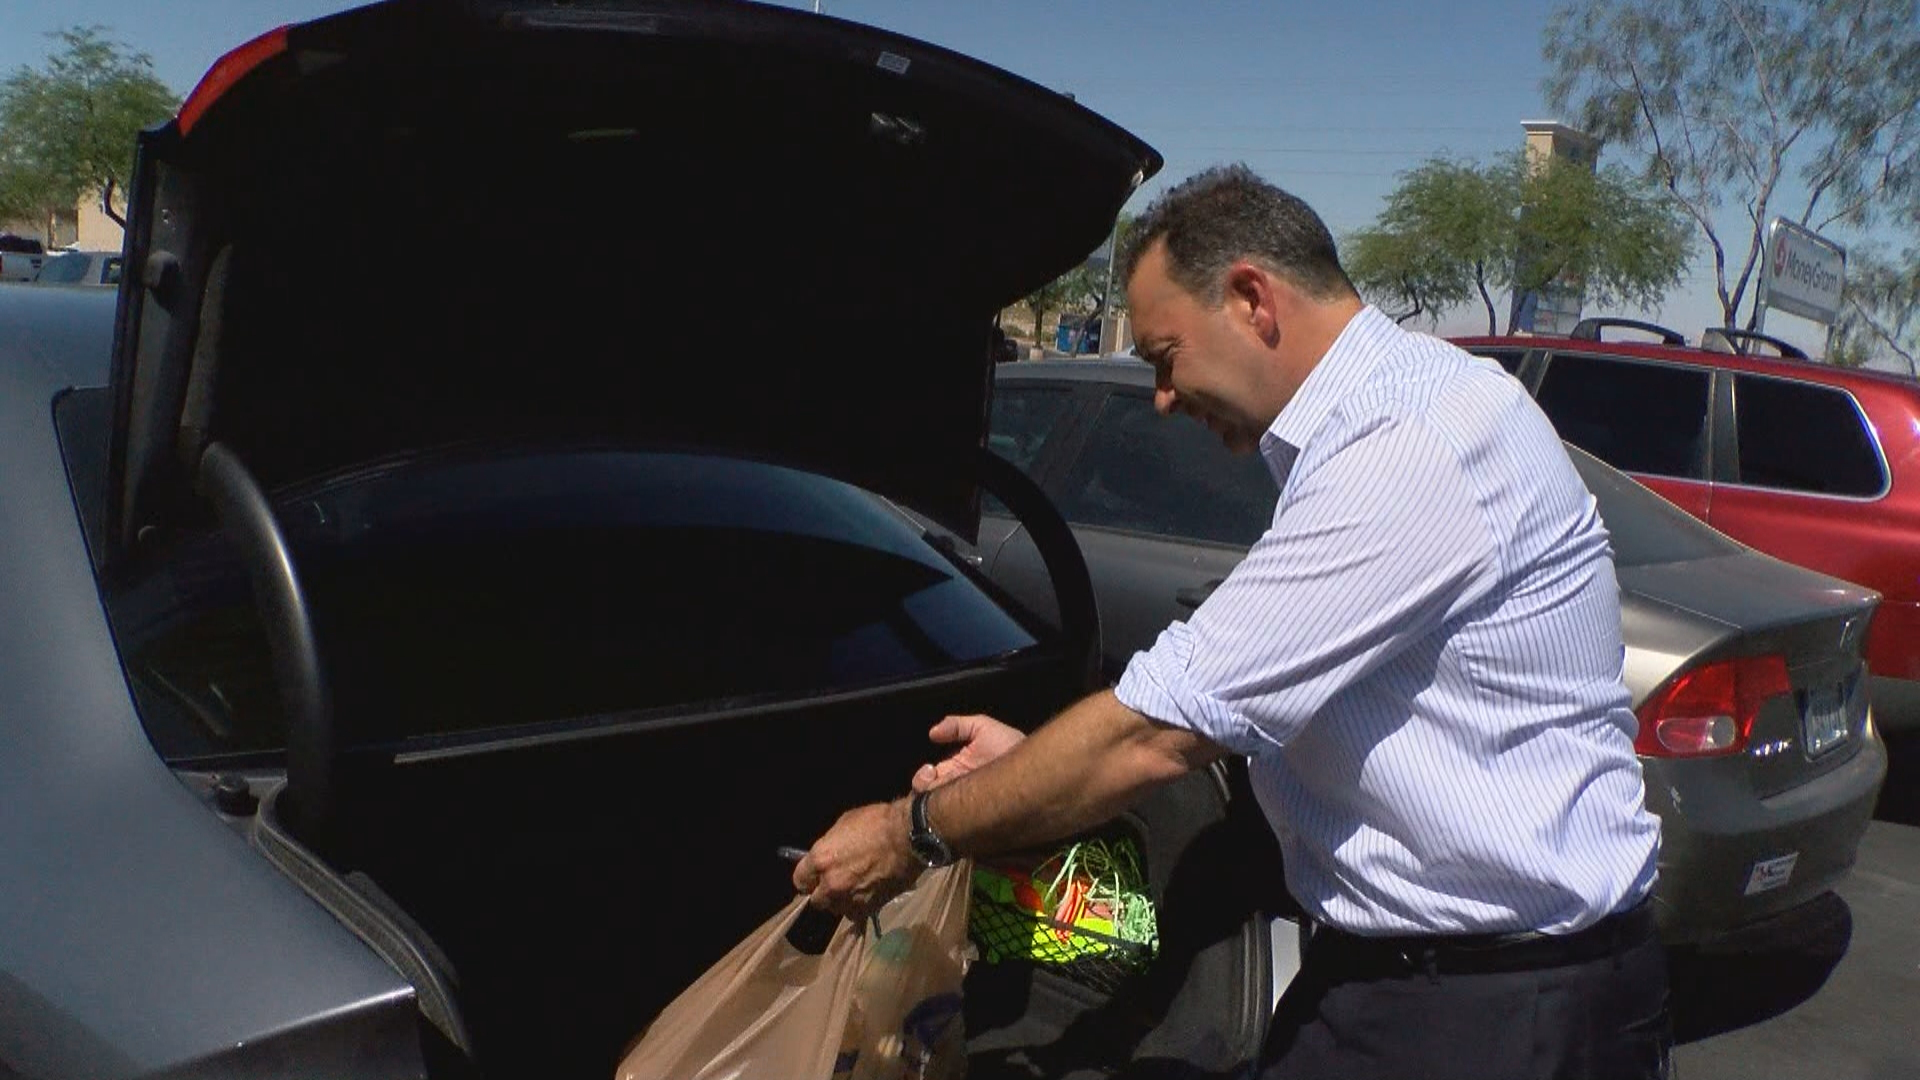 Food transport from a local warehouse could pose a potential health risk. (KSNV)